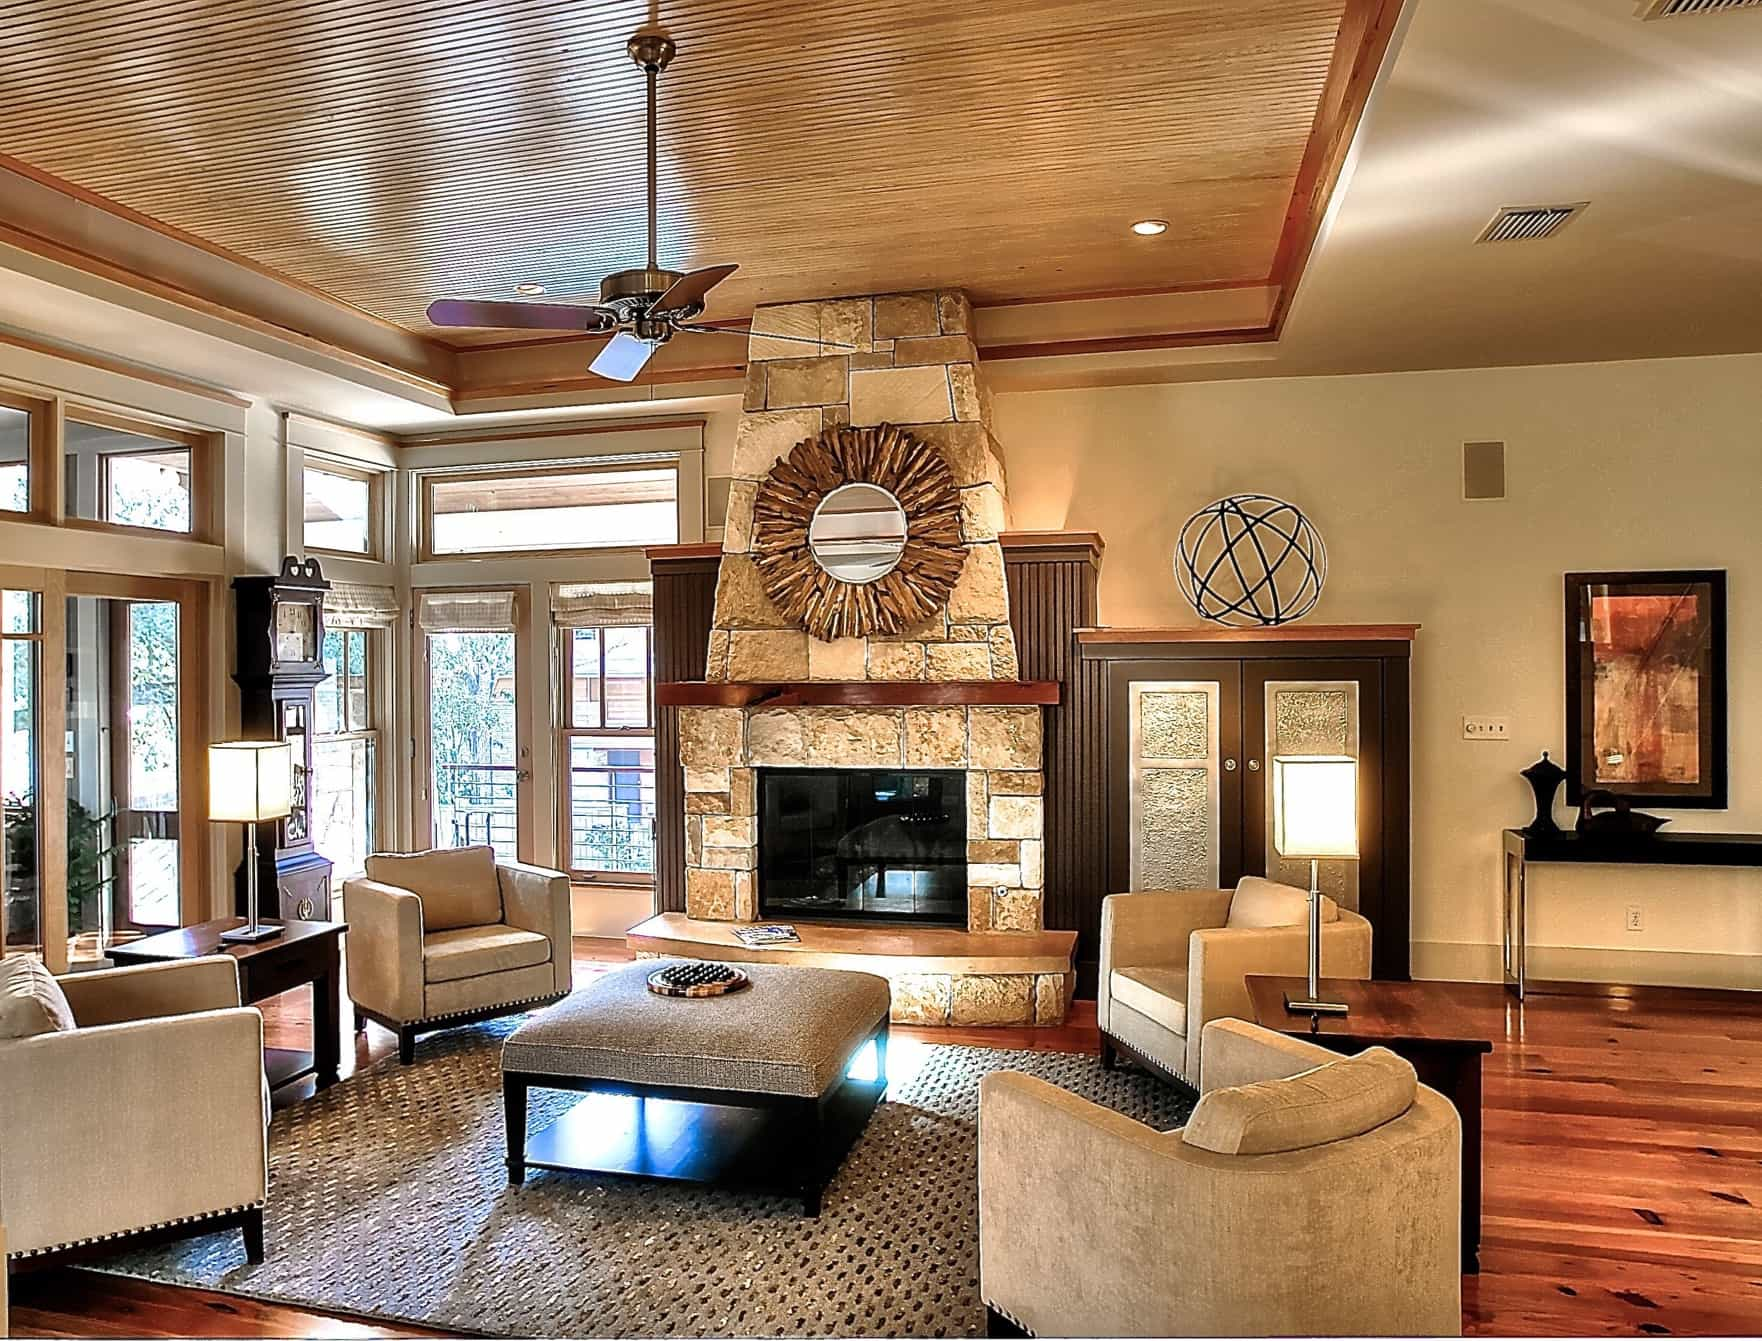 Featured Image of Sophisticated Rustic Living Room Decor With Modern Lighting